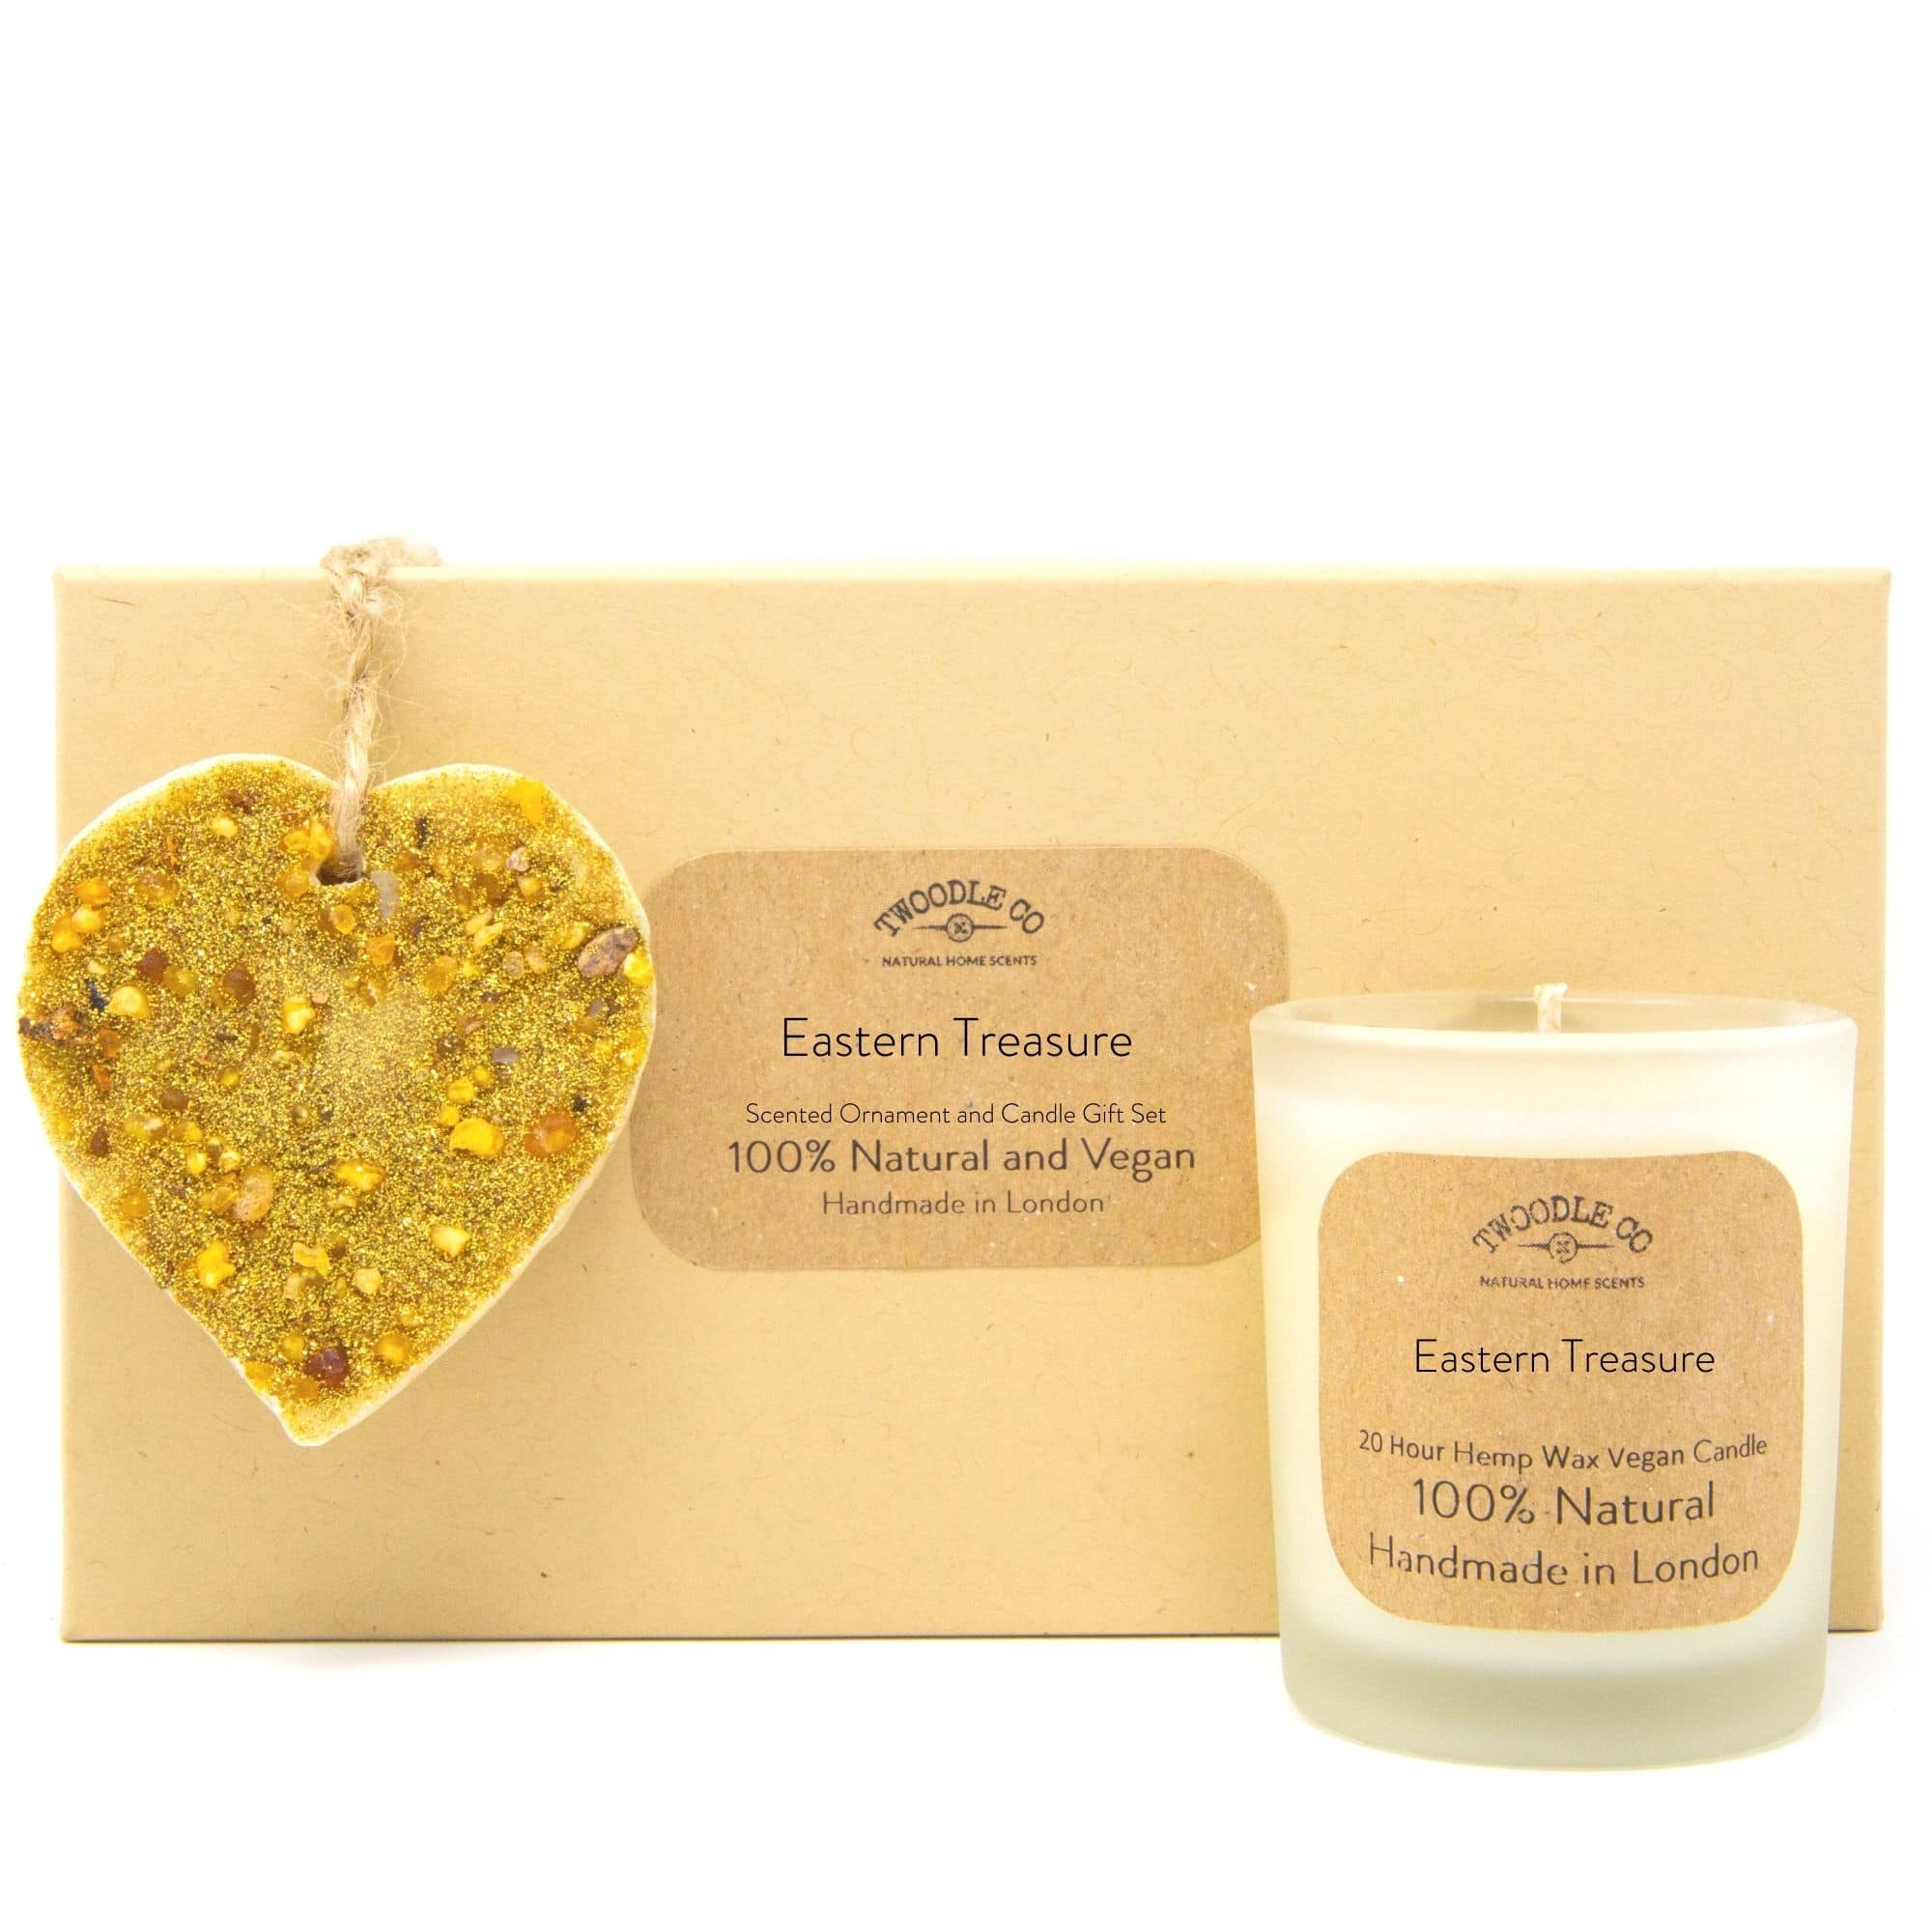 Eastern Treasure Scented Ornament and Candle Gift Set by twoodle co natural home scents